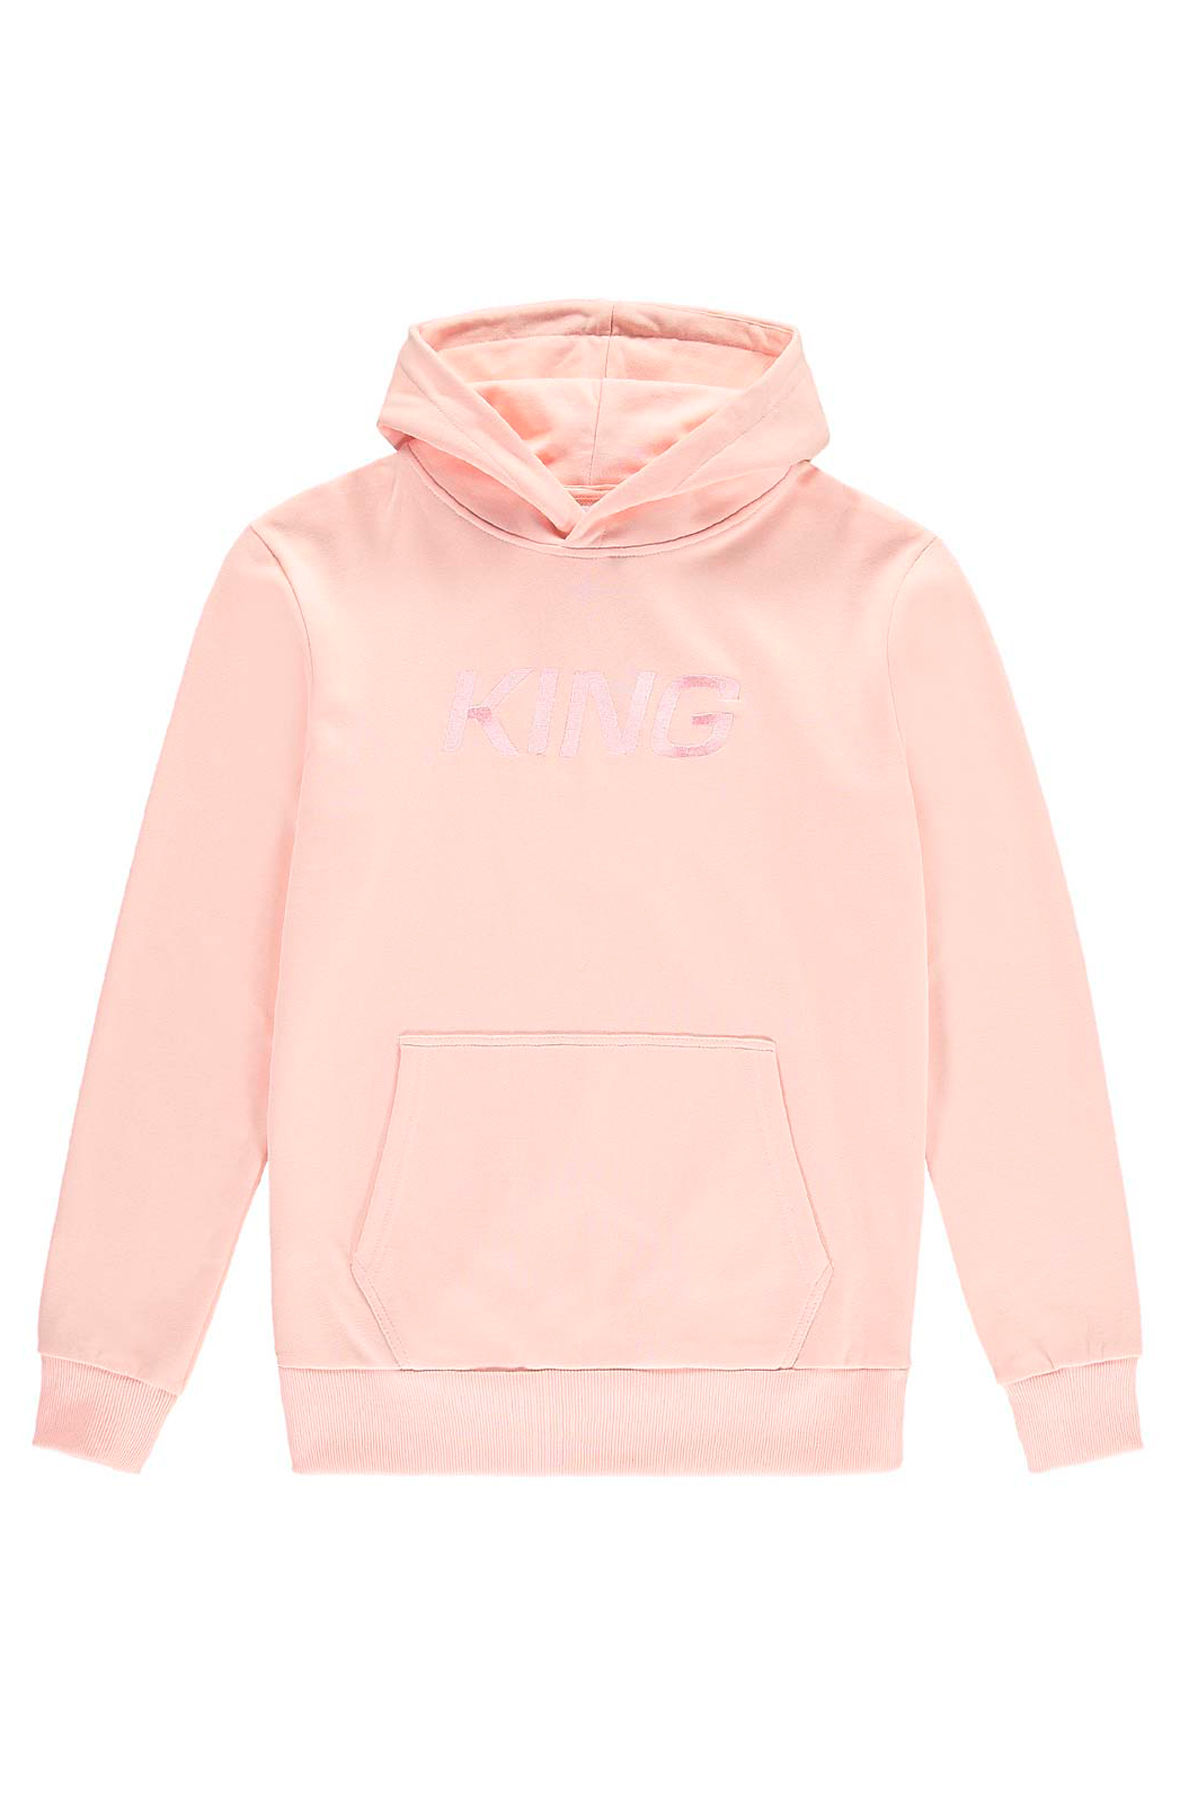 Wapping Tracksuit Top Blush